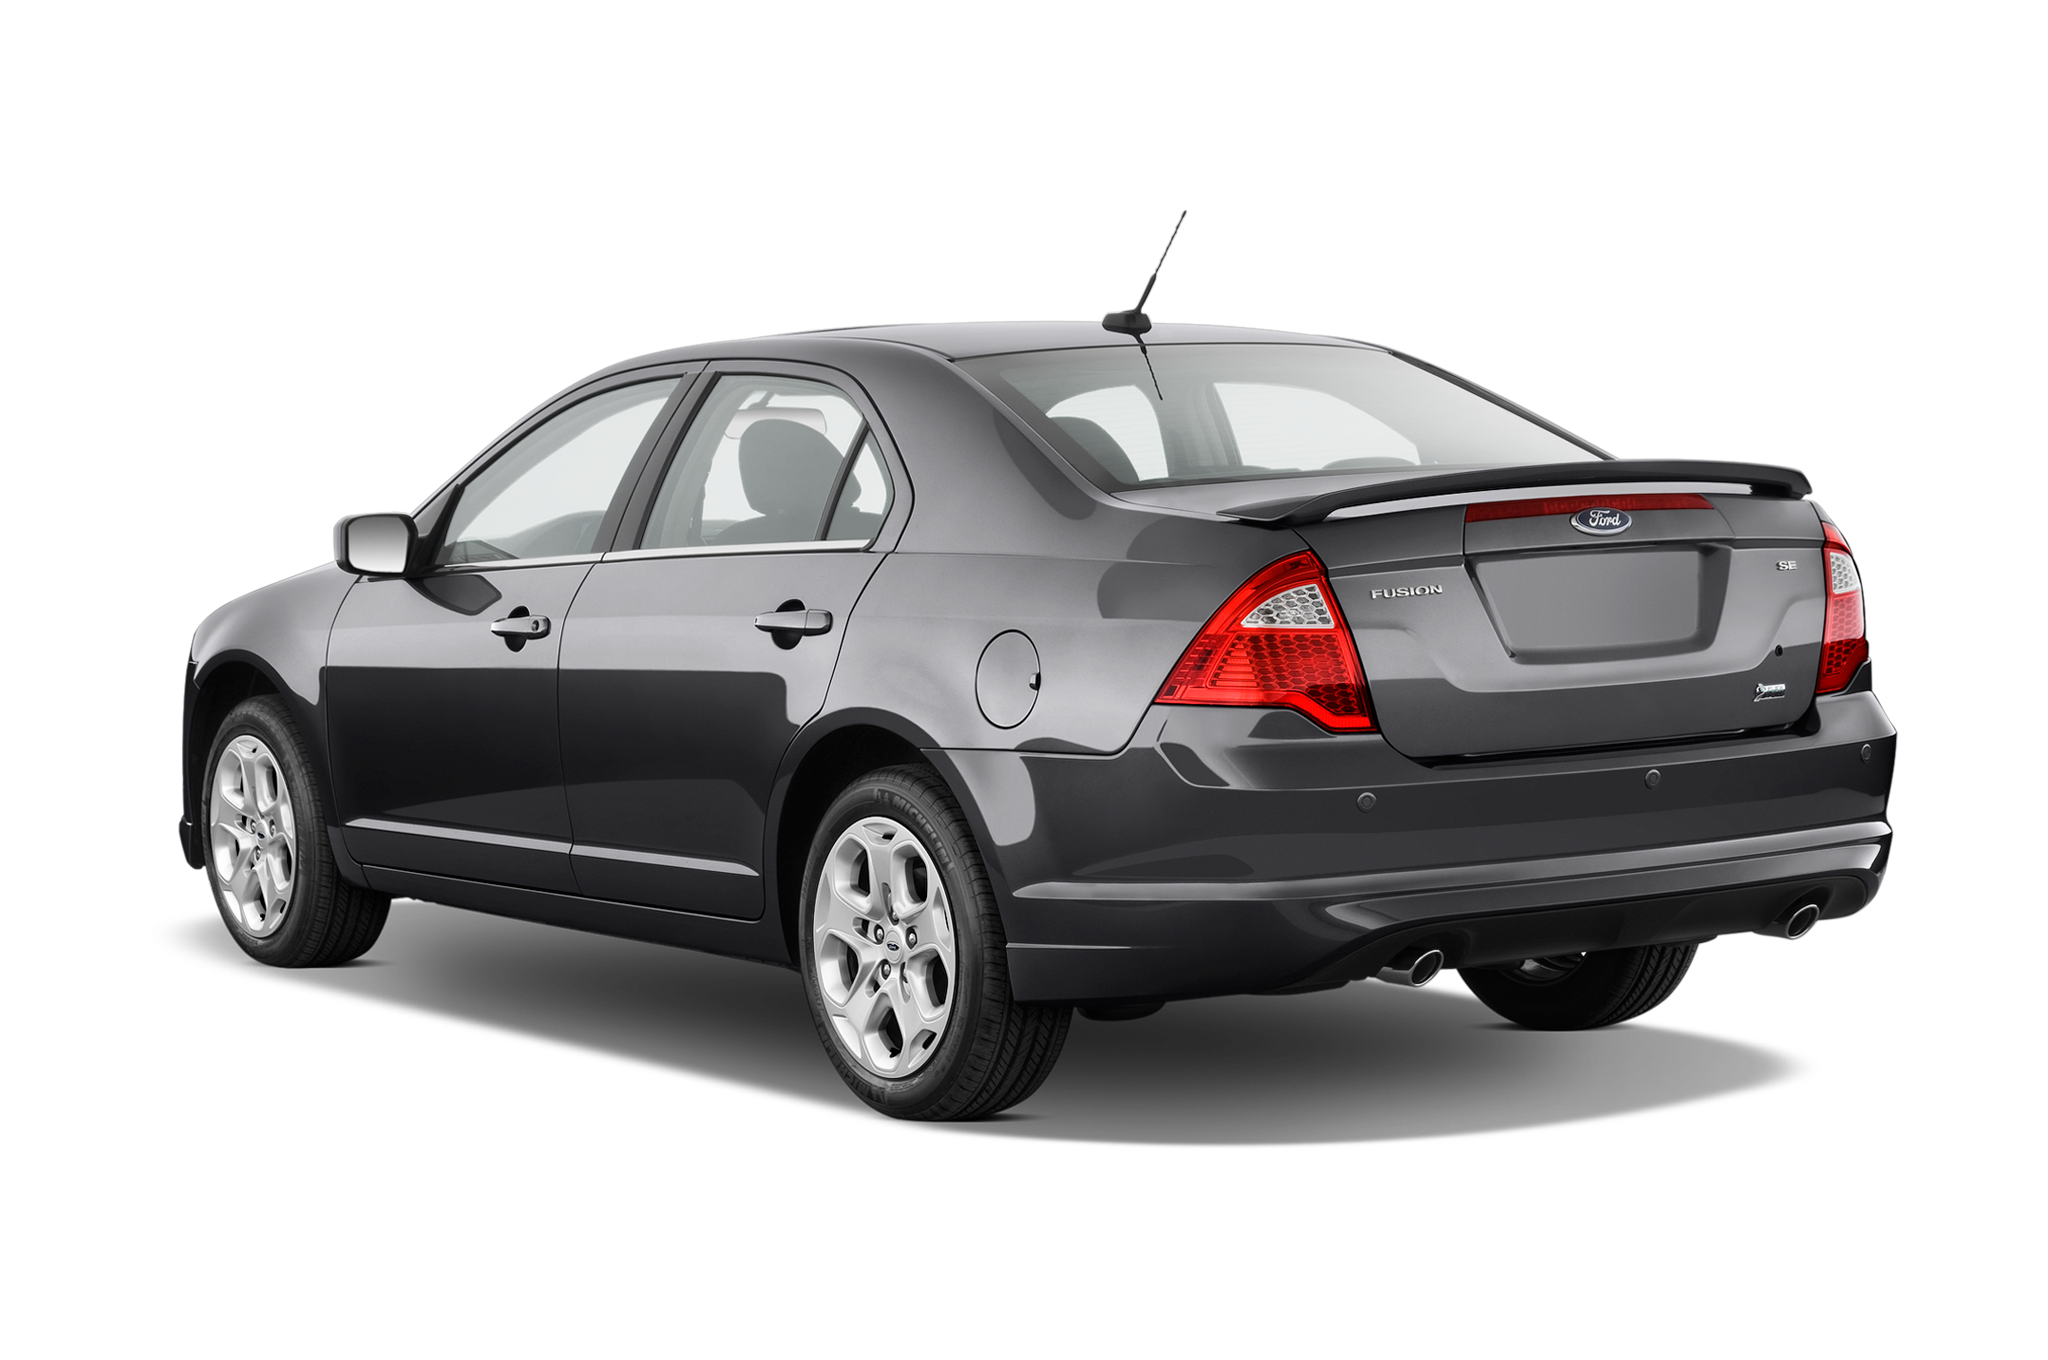 Ford Fusion (North America) I 2005 - 2012 Sedan #4